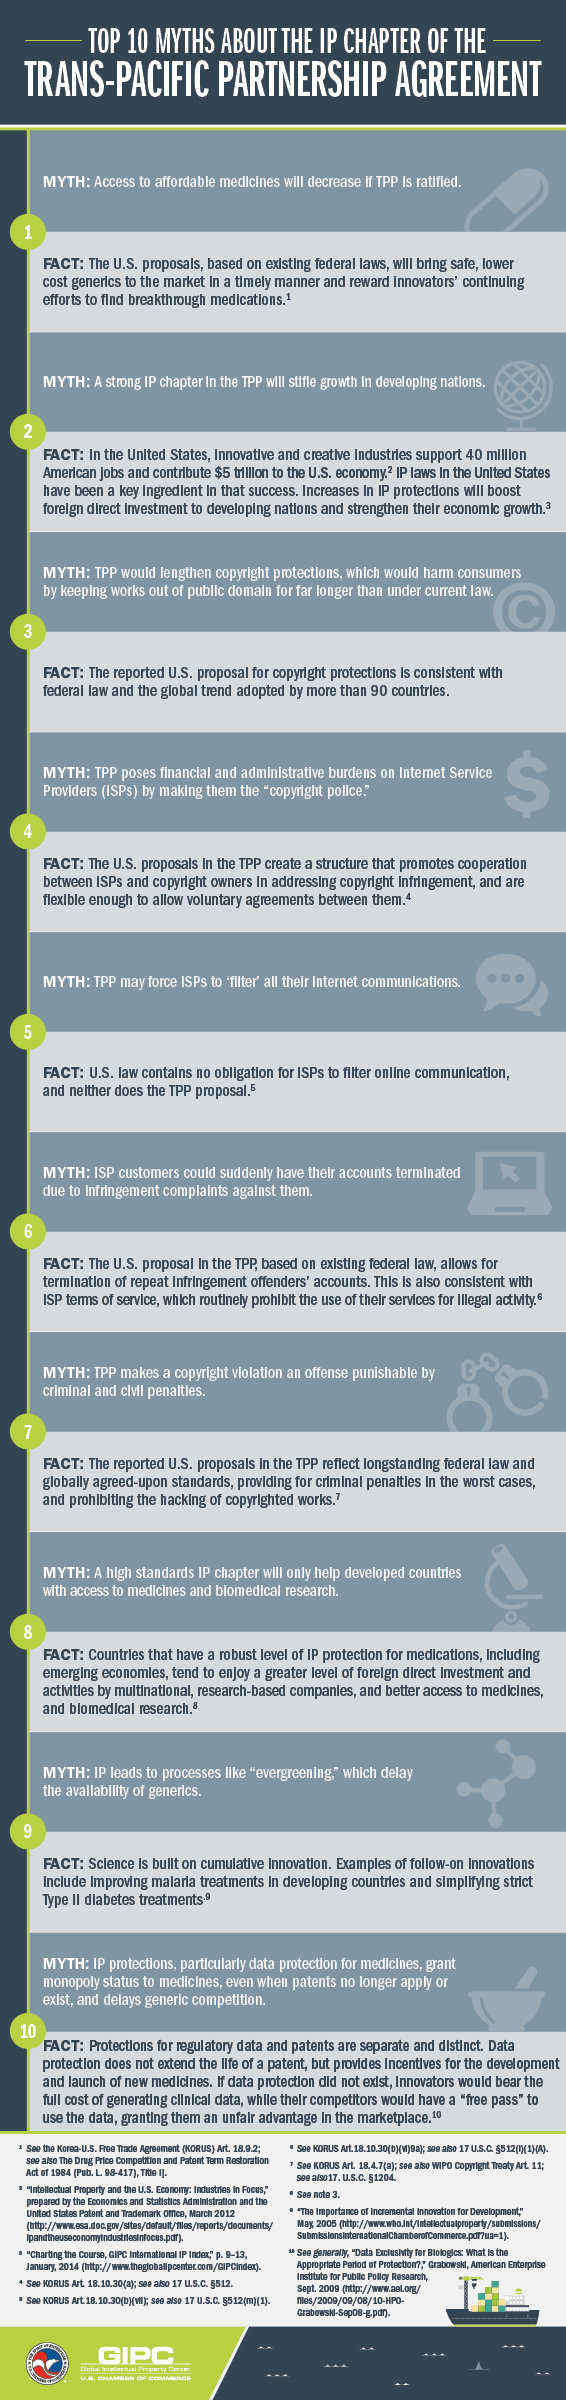 What Are The Top 10 Myths About Intellectual Property And The Trans-Pacific Partnership Agreement? #Infographic